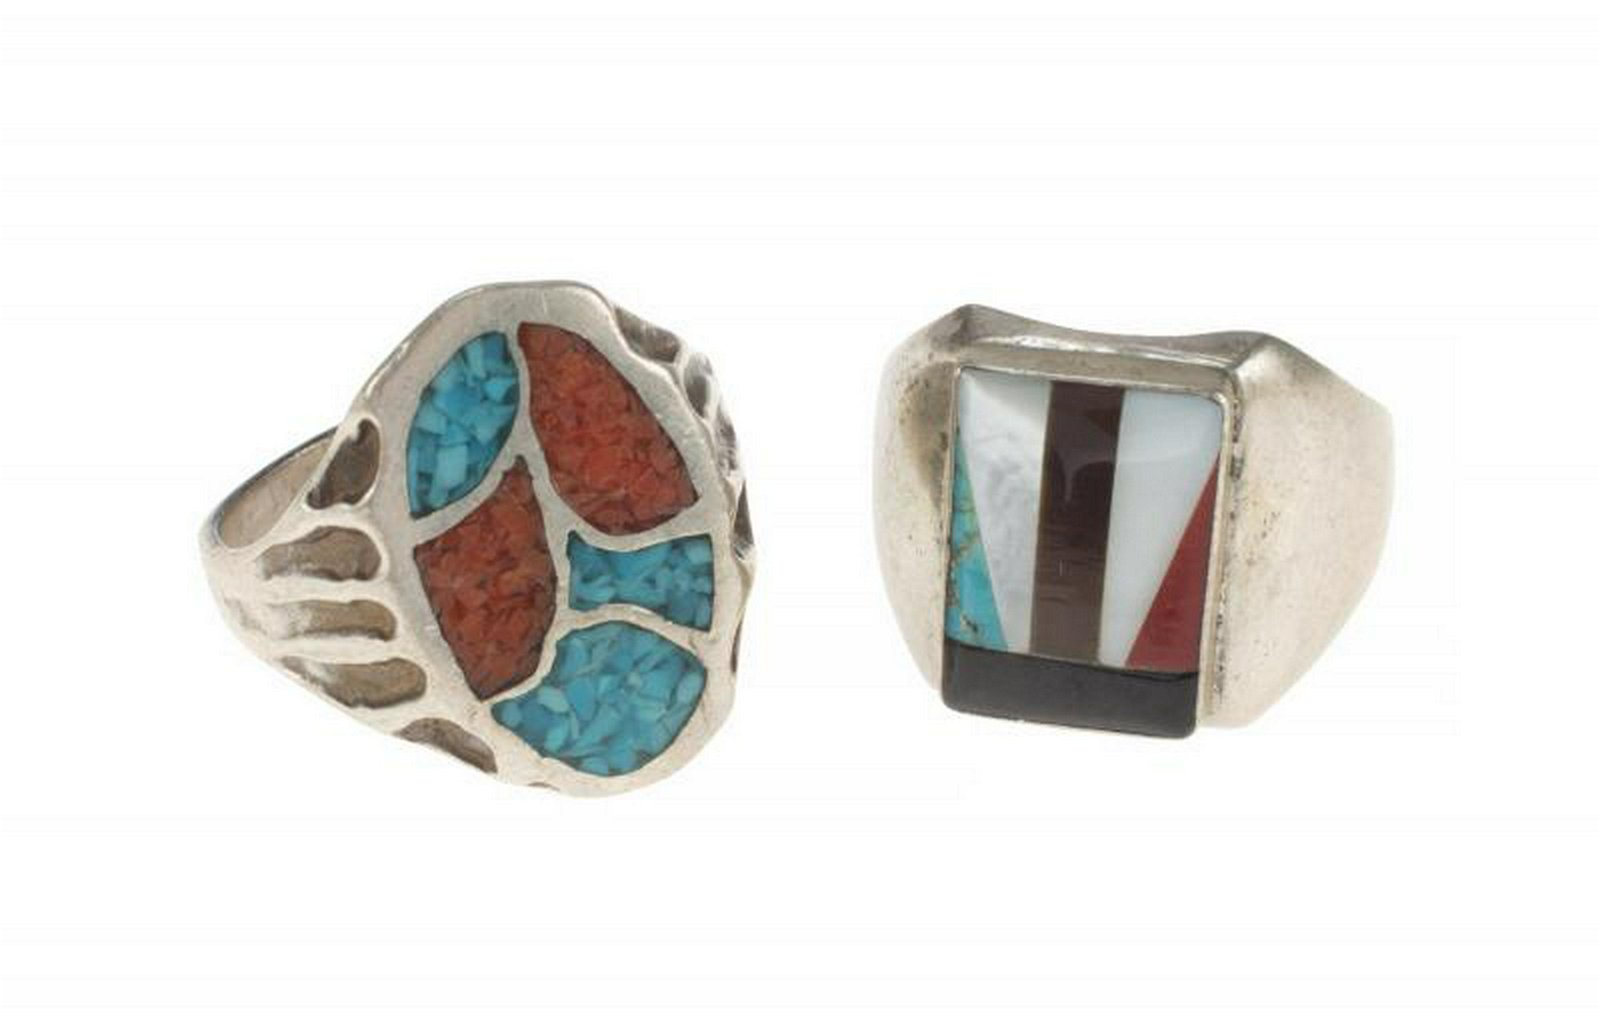 B.B. KING TURQUOISE AND STERLING SILVER RINGS